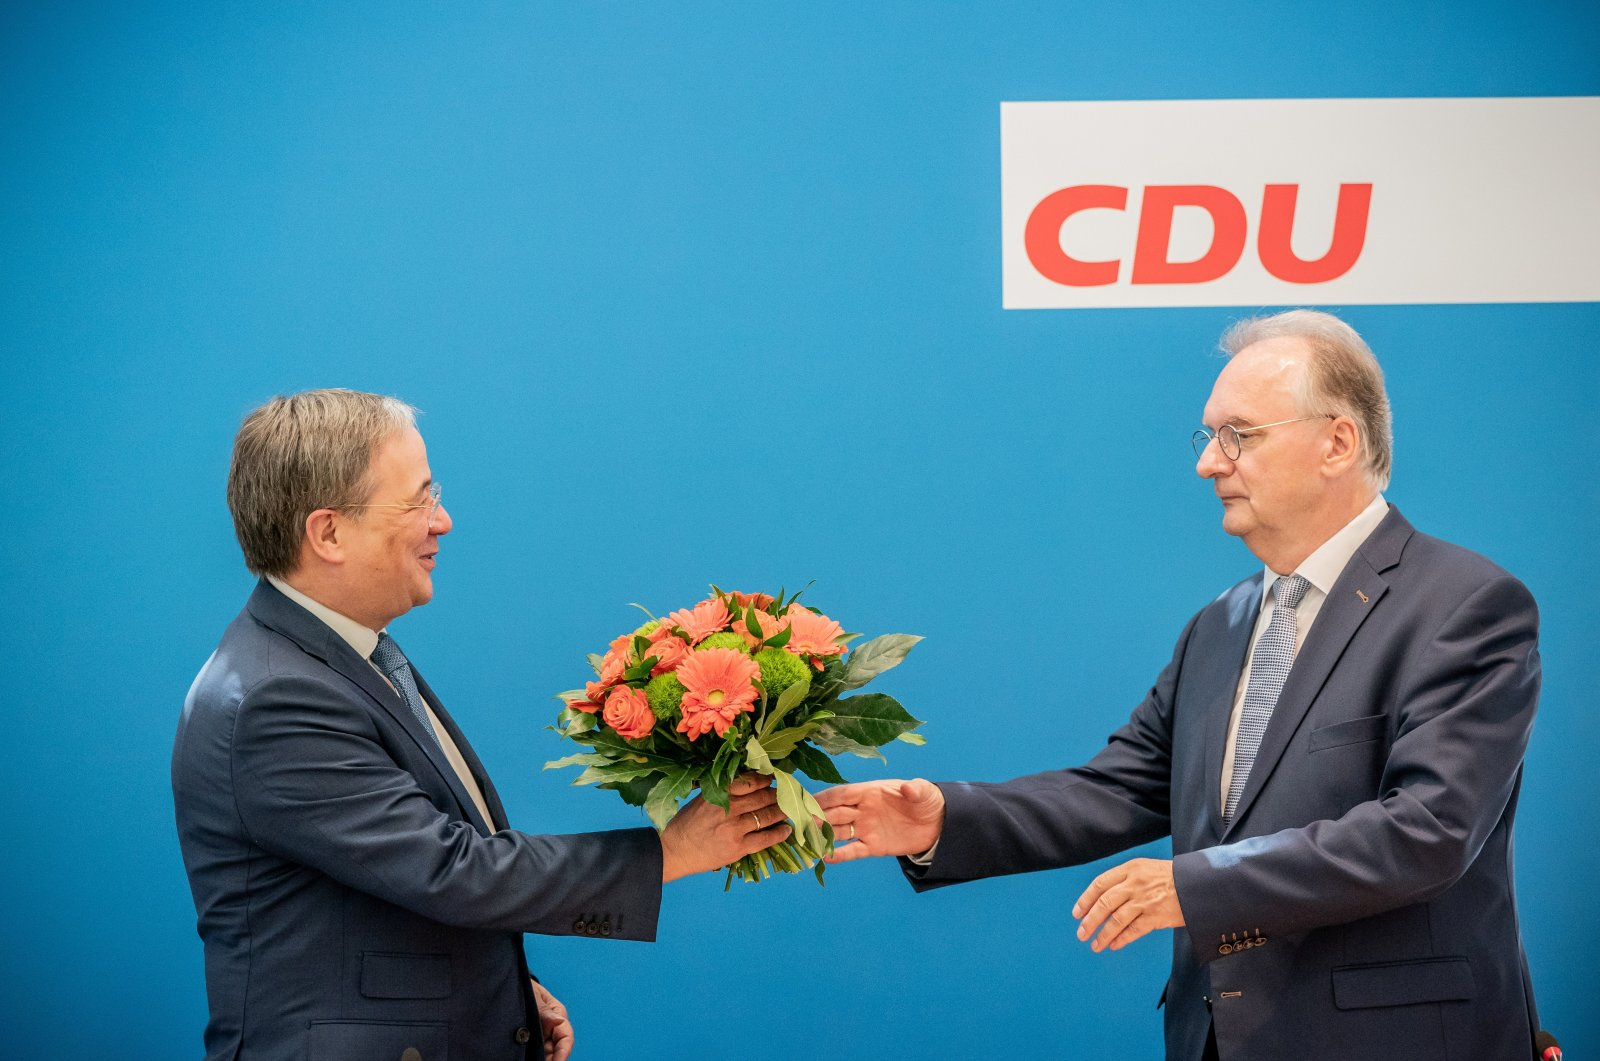 Armin Laschet (L), the state premier of North-Rhine Westphalia (NRW) and leader of the Christian Democratic Union party (CDU), hands a bouquet of flowers to Saxony-Anhalt State Premier Reiner Haseloff at a CDU board meeting following the Saxony-Anhalt state election, in Berlin, Germany, June 7, 2021. (Reuters Photo)